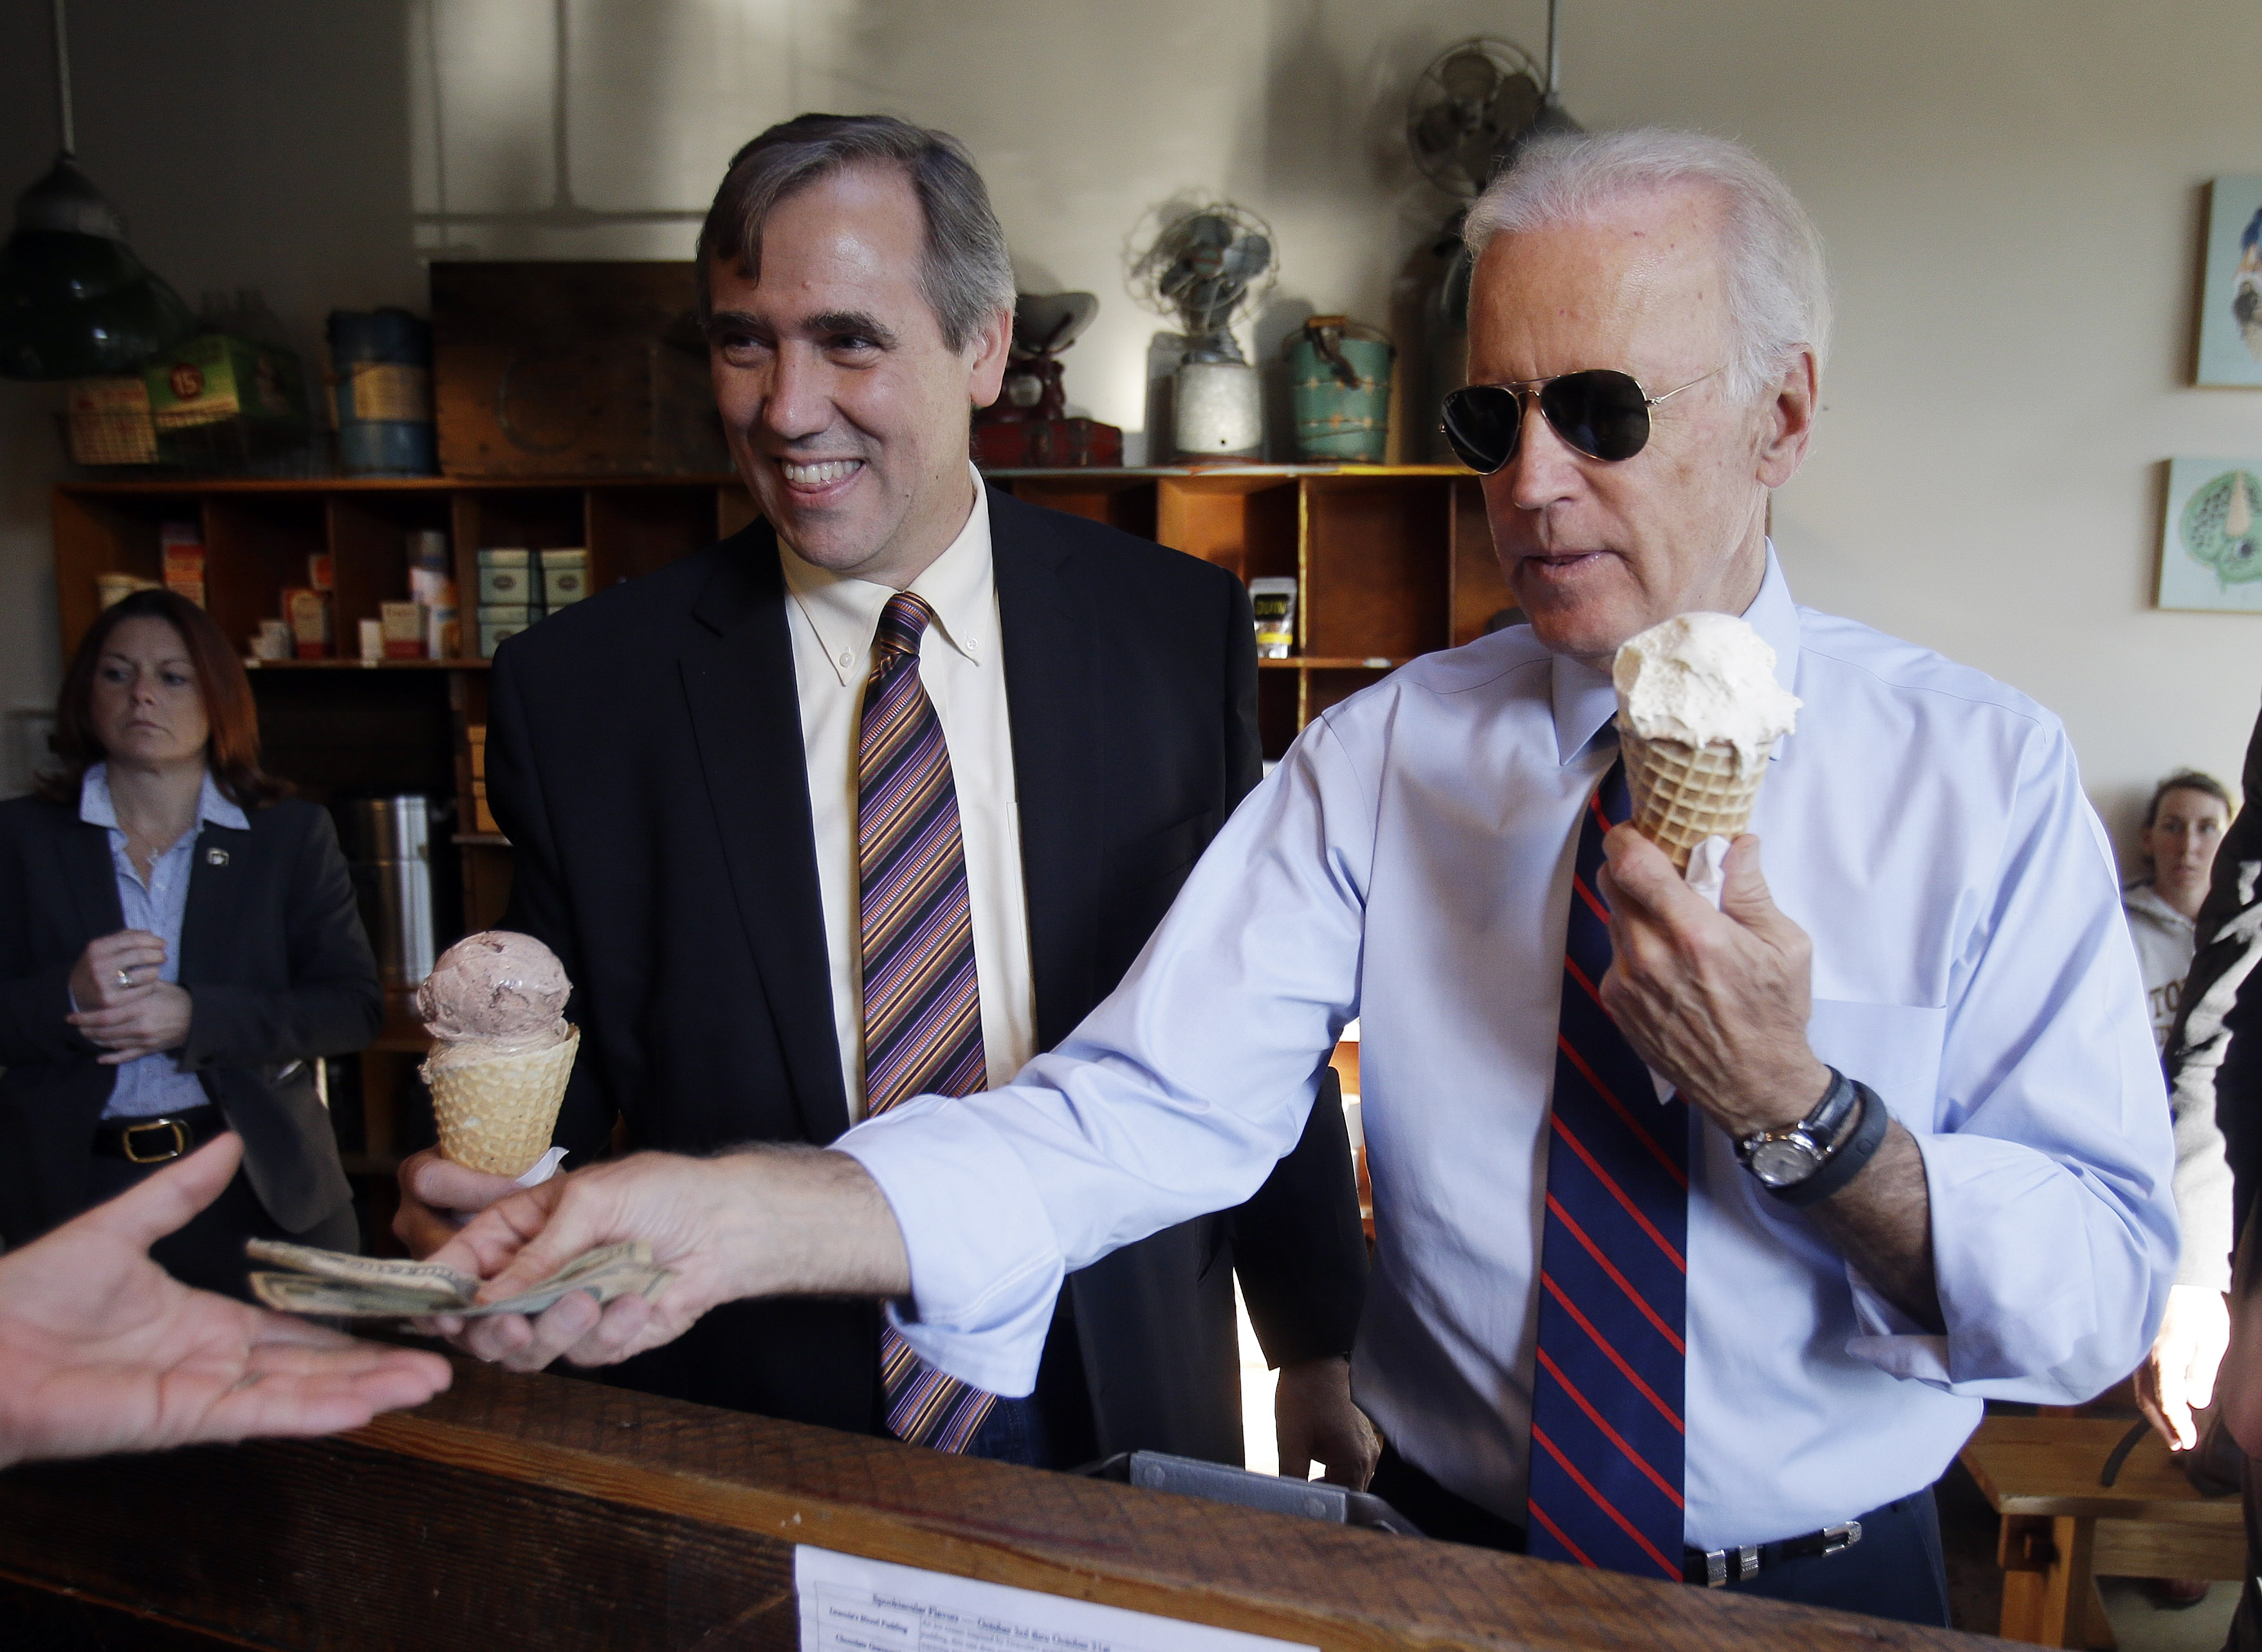 Vice President Joe Biden, right, pays for ice cream cones for himself and U.S. Sen. Jeff Merkley after a campaign rally in Portland, Ore., Wednesday, Oct. 8, 2014.